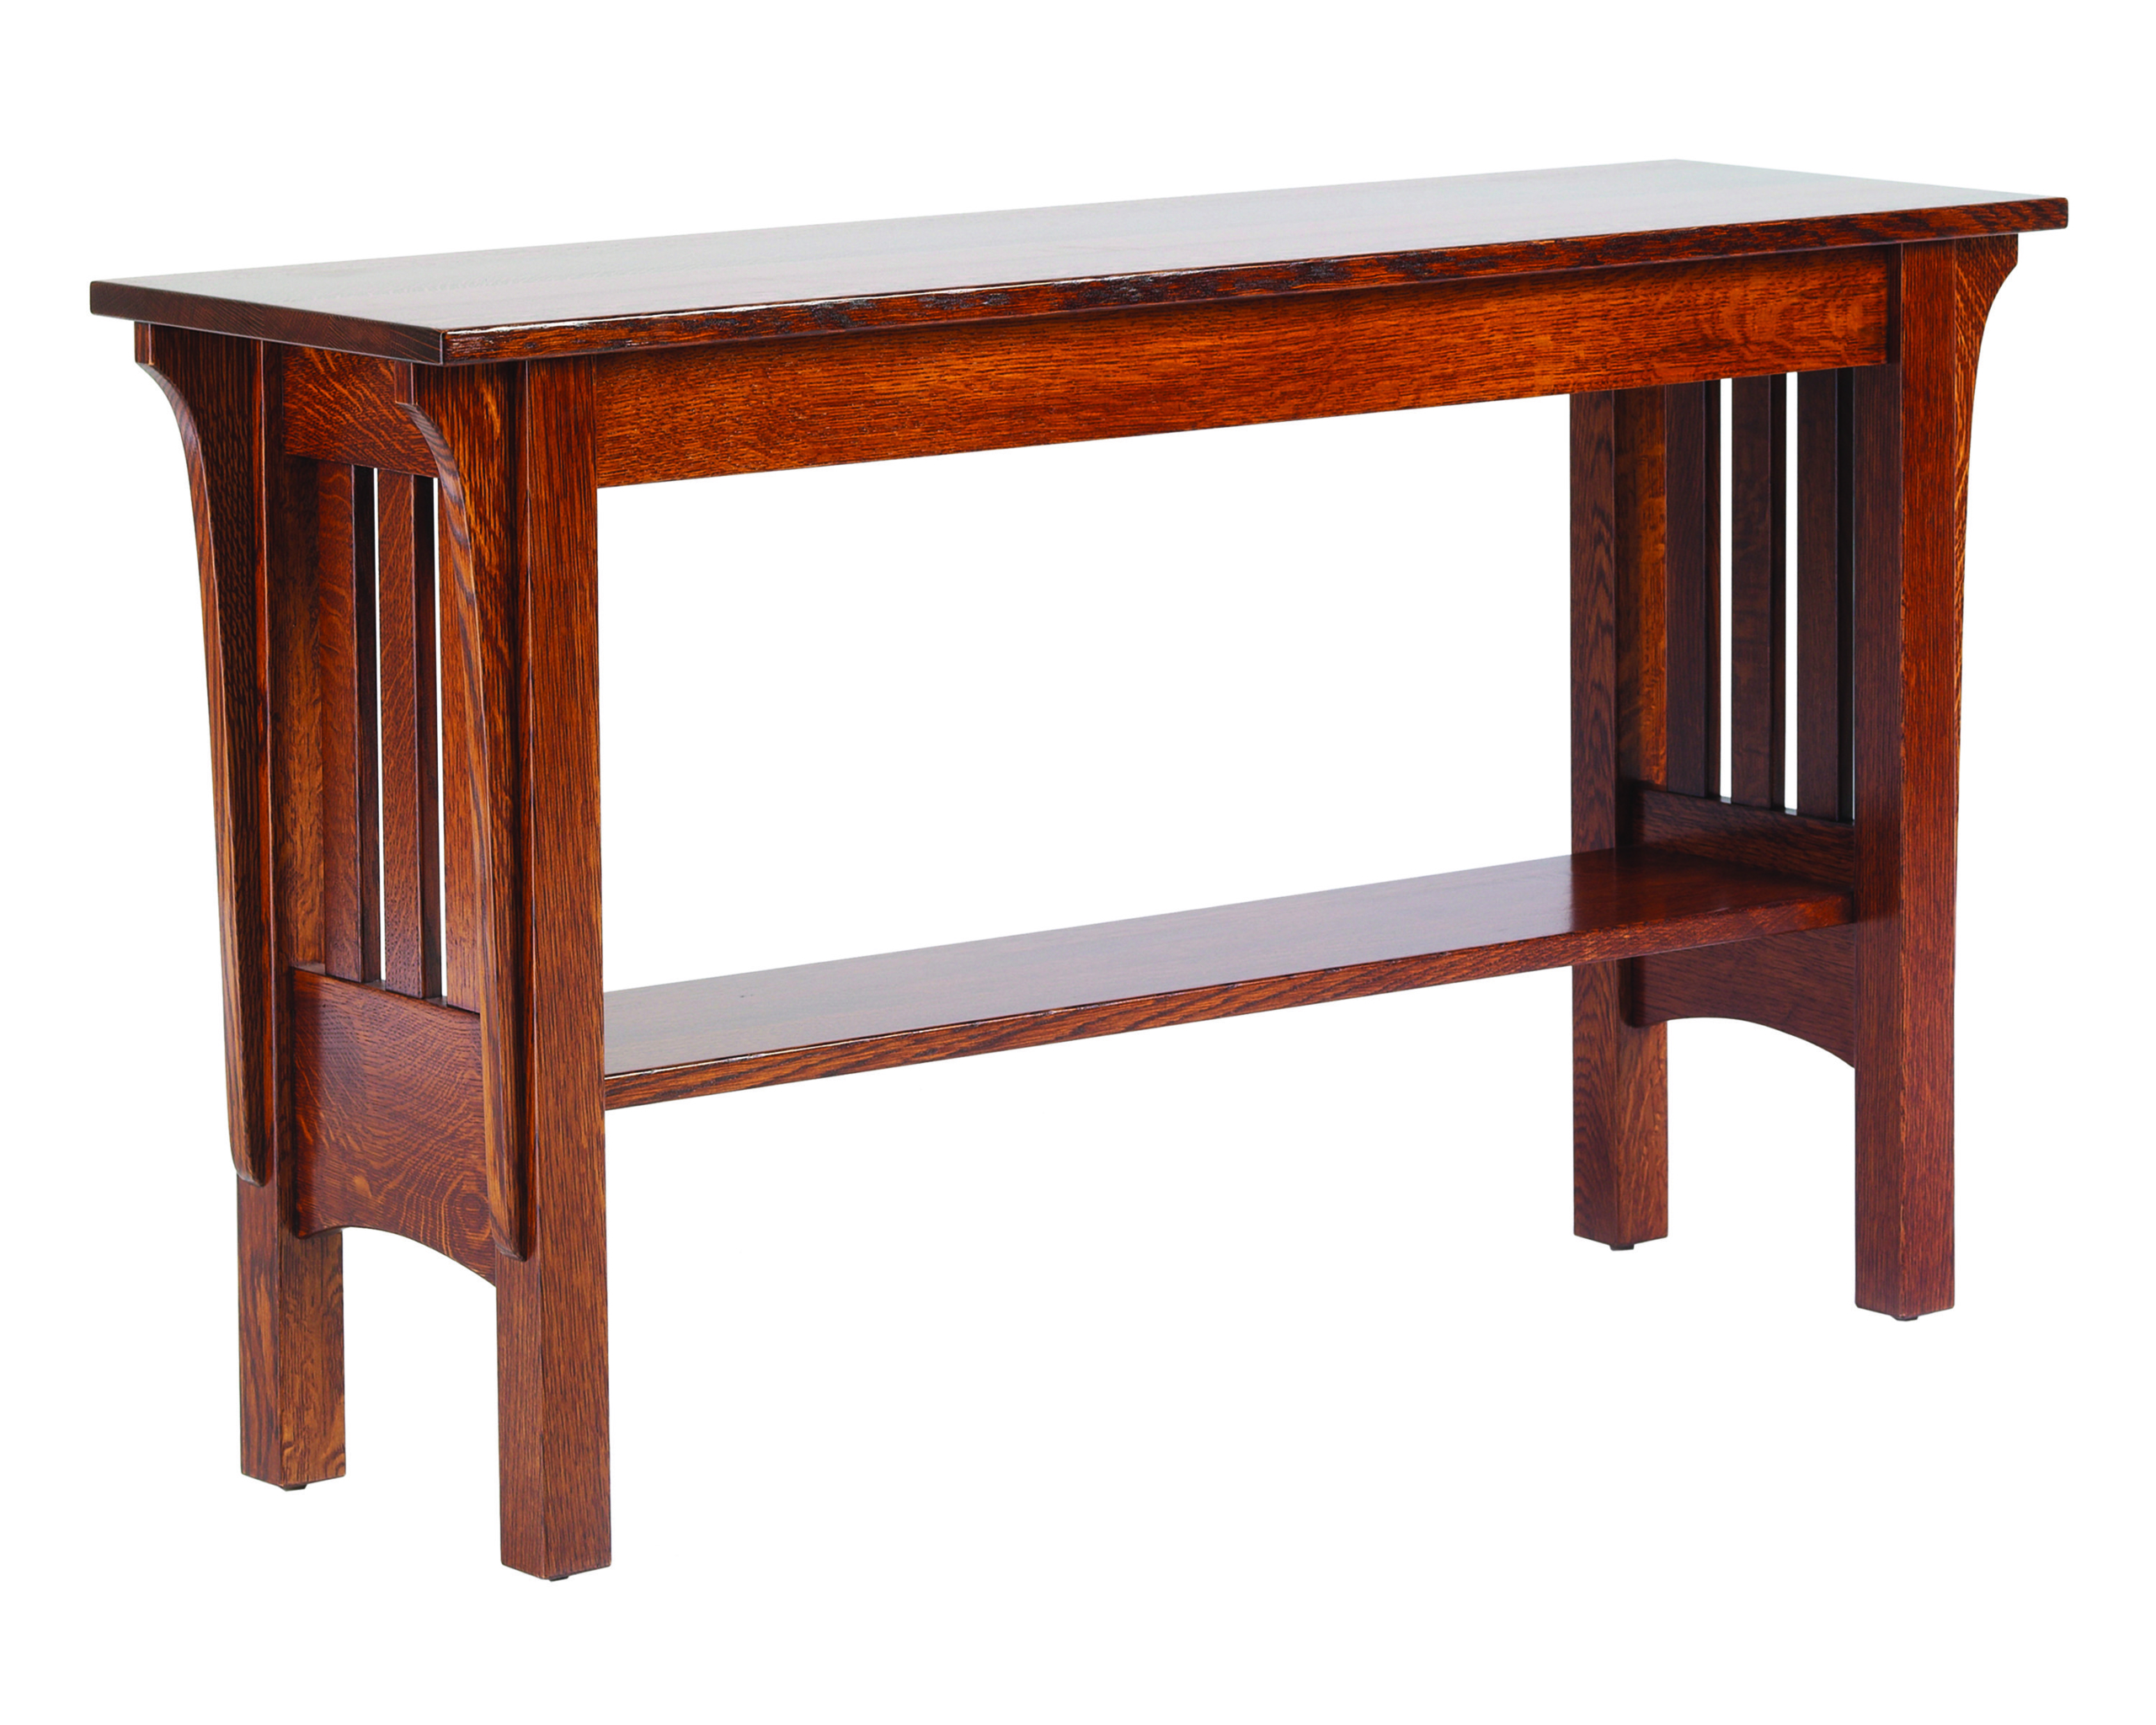 mission oak sofa table ideas on foter rh foter com mission style furniture end tables mission style oak sofa table